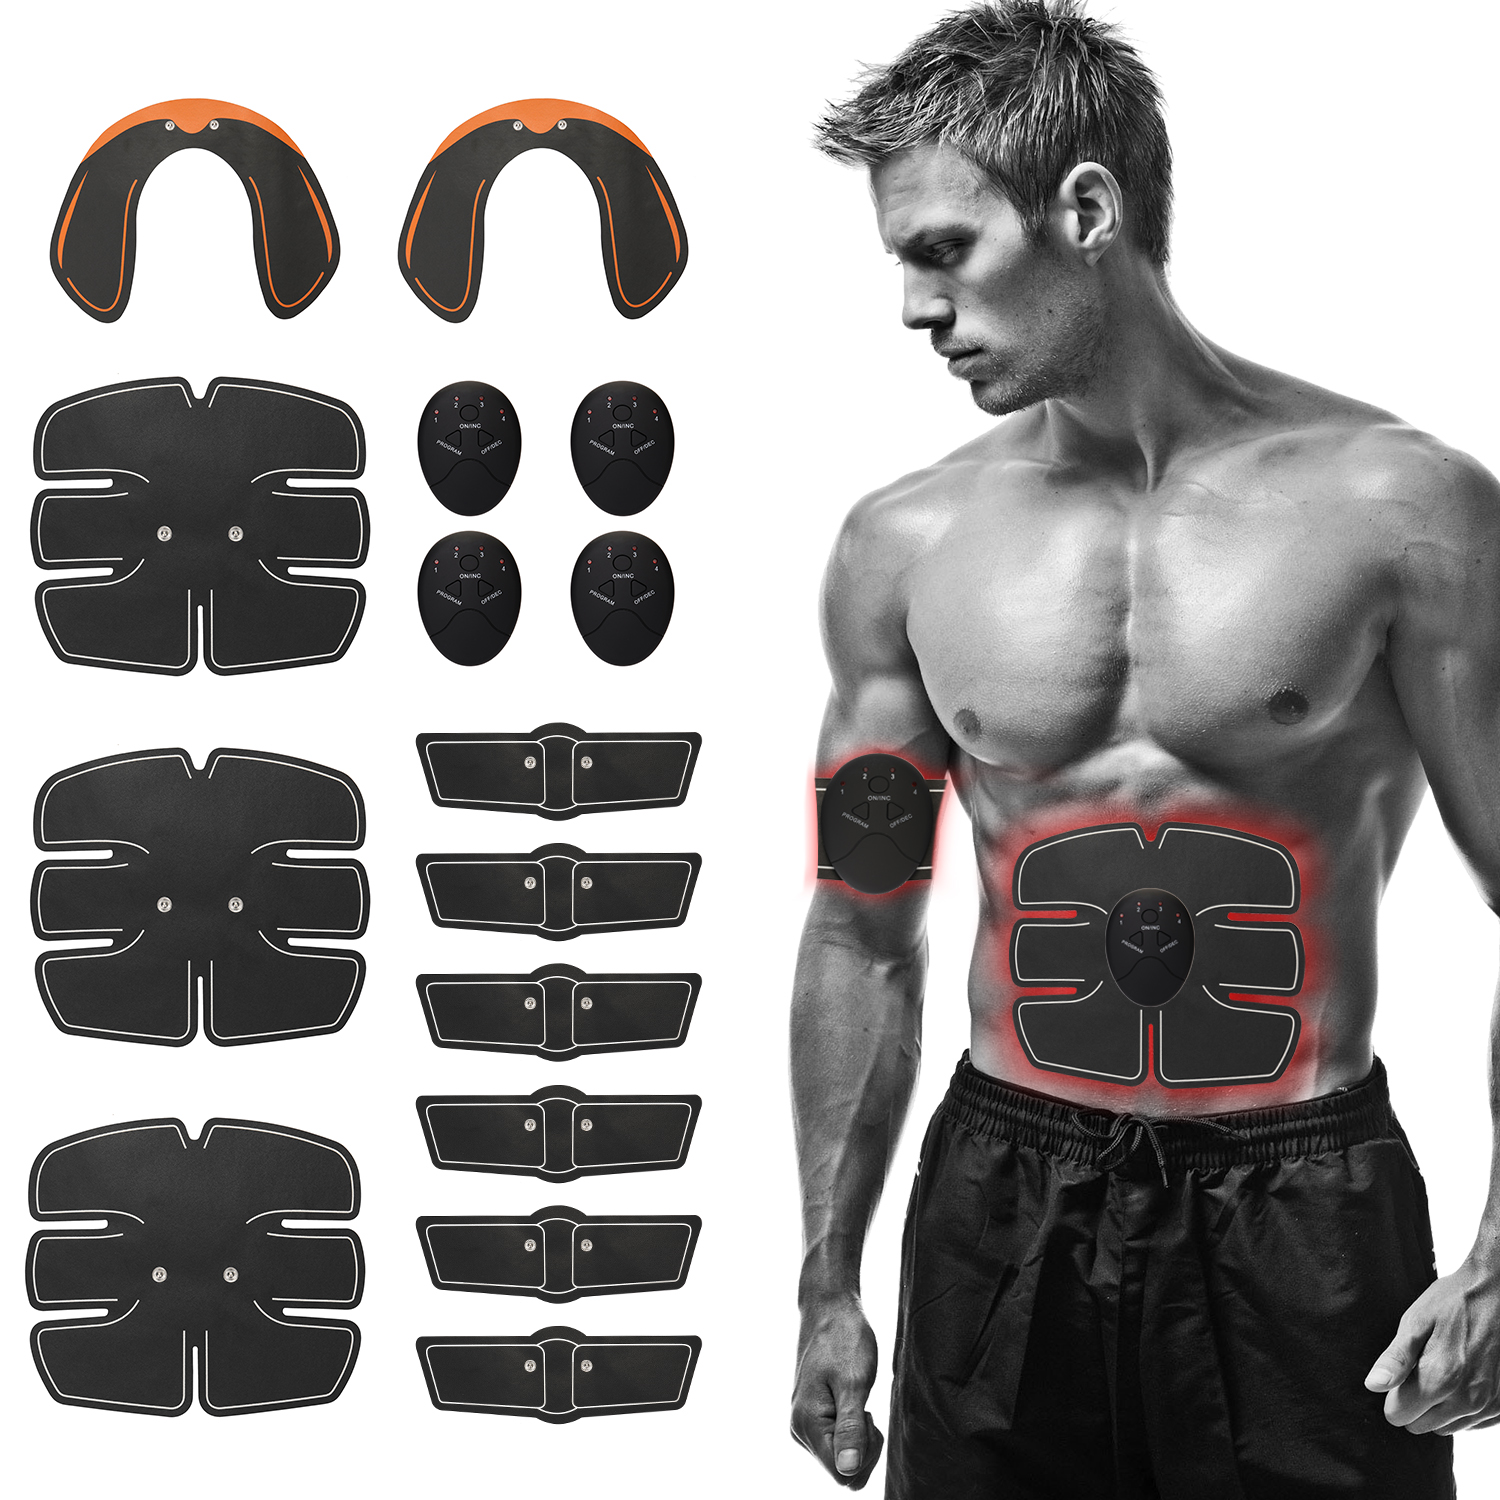 15pcs/Set ABS Abdominal Muscle Stimulator Training Gear Hip Trainer Set Gym Machine Exercise Fitness Equipment for Home Gym image